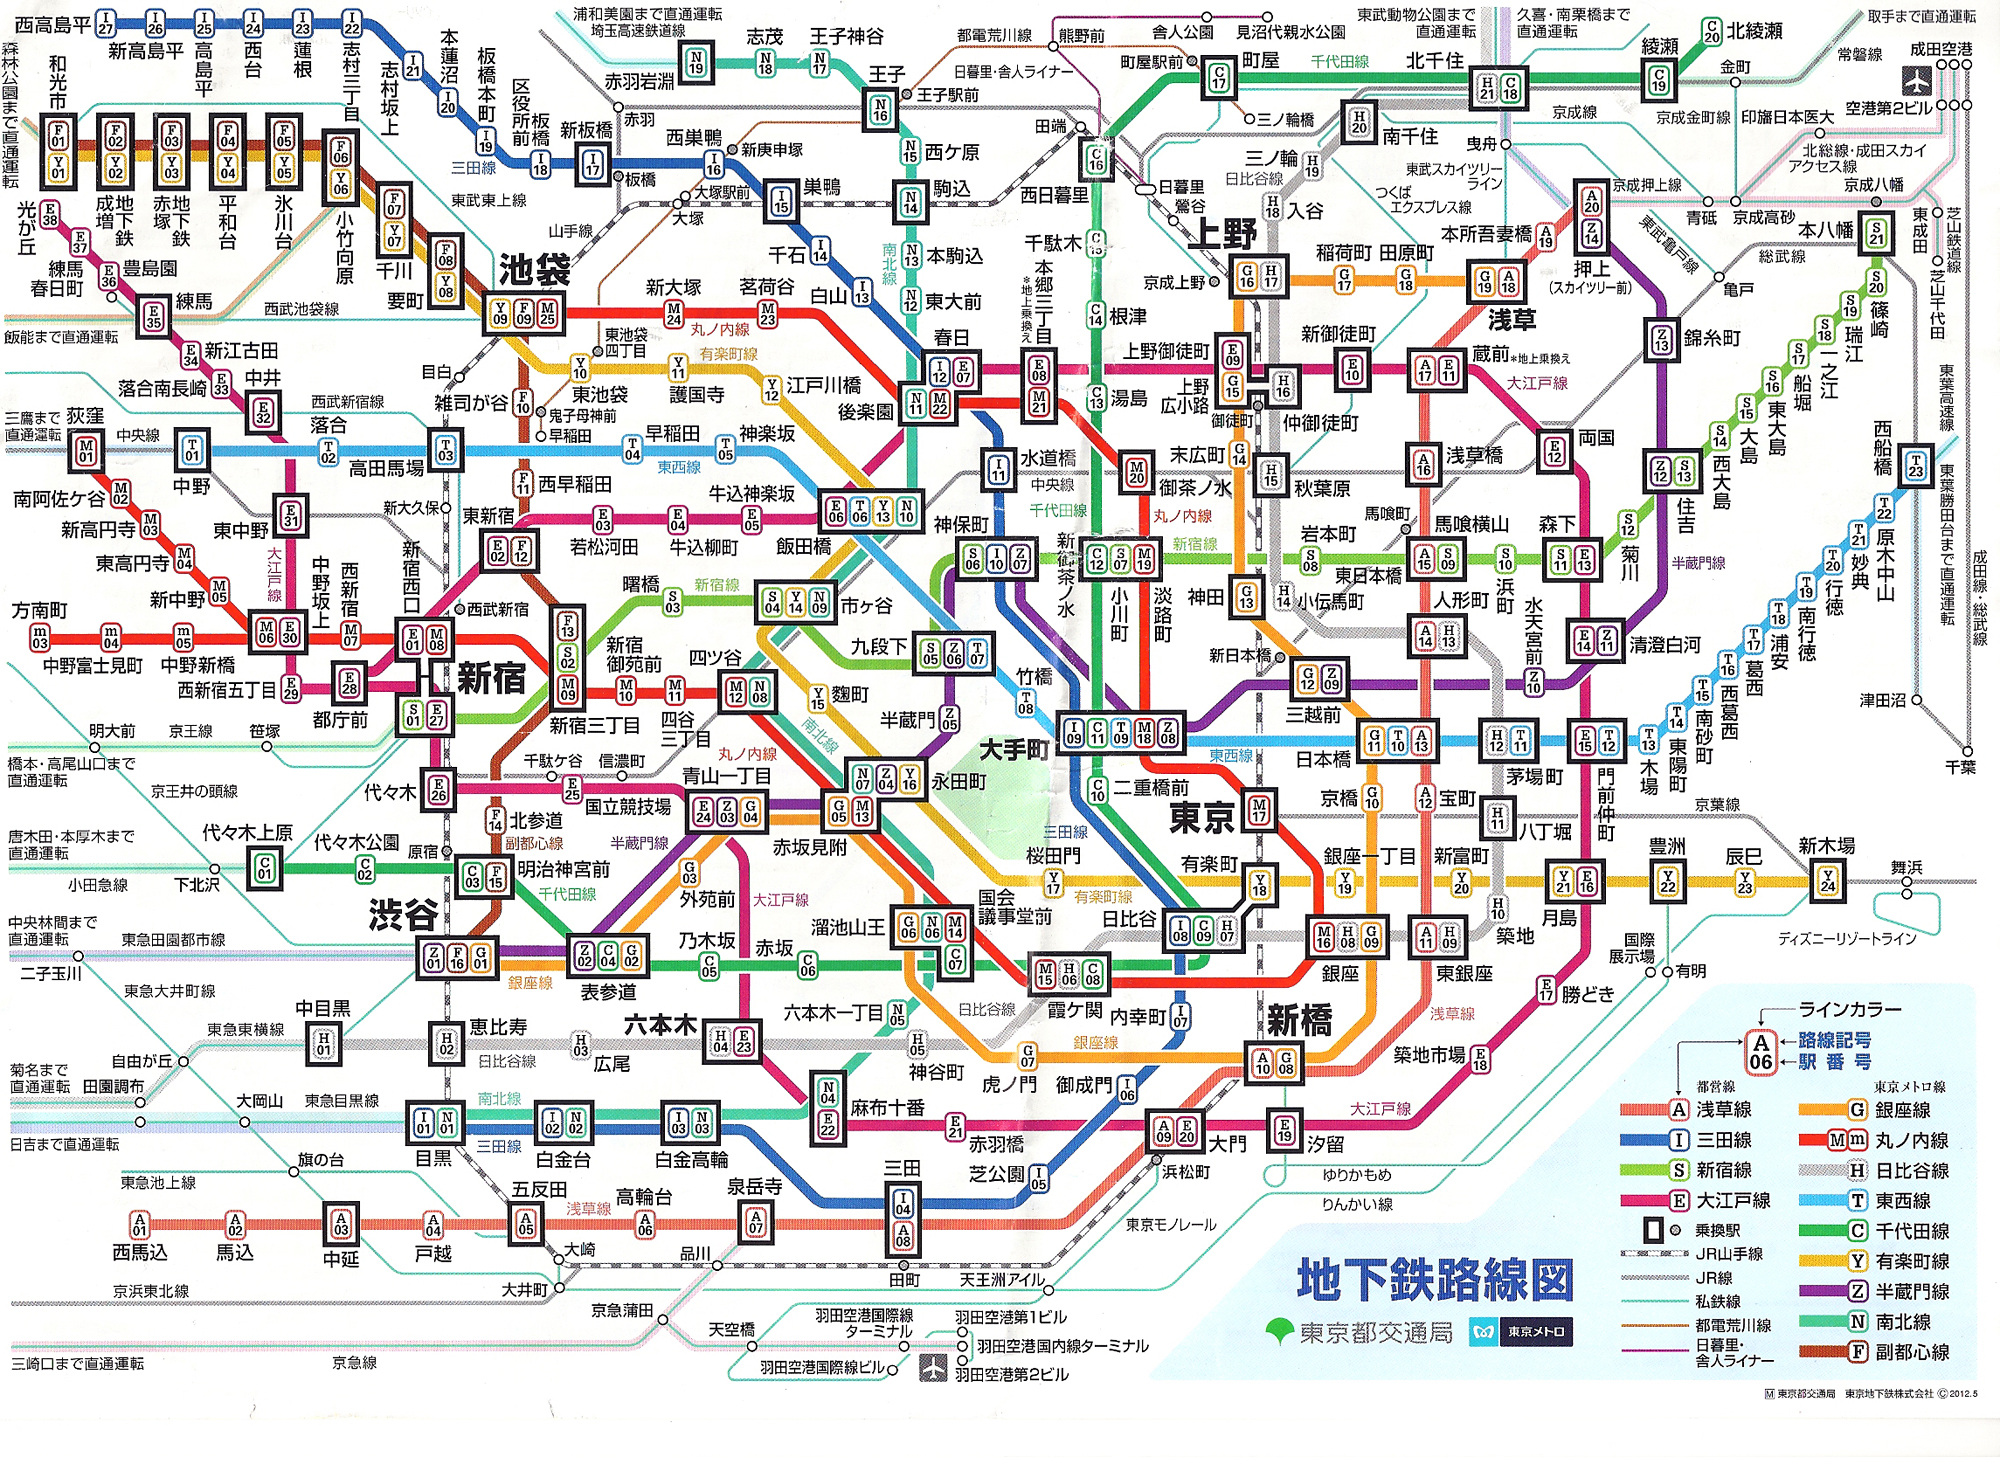 Tokyo Subway Map.Tokyo Metro Map Compass Whistle